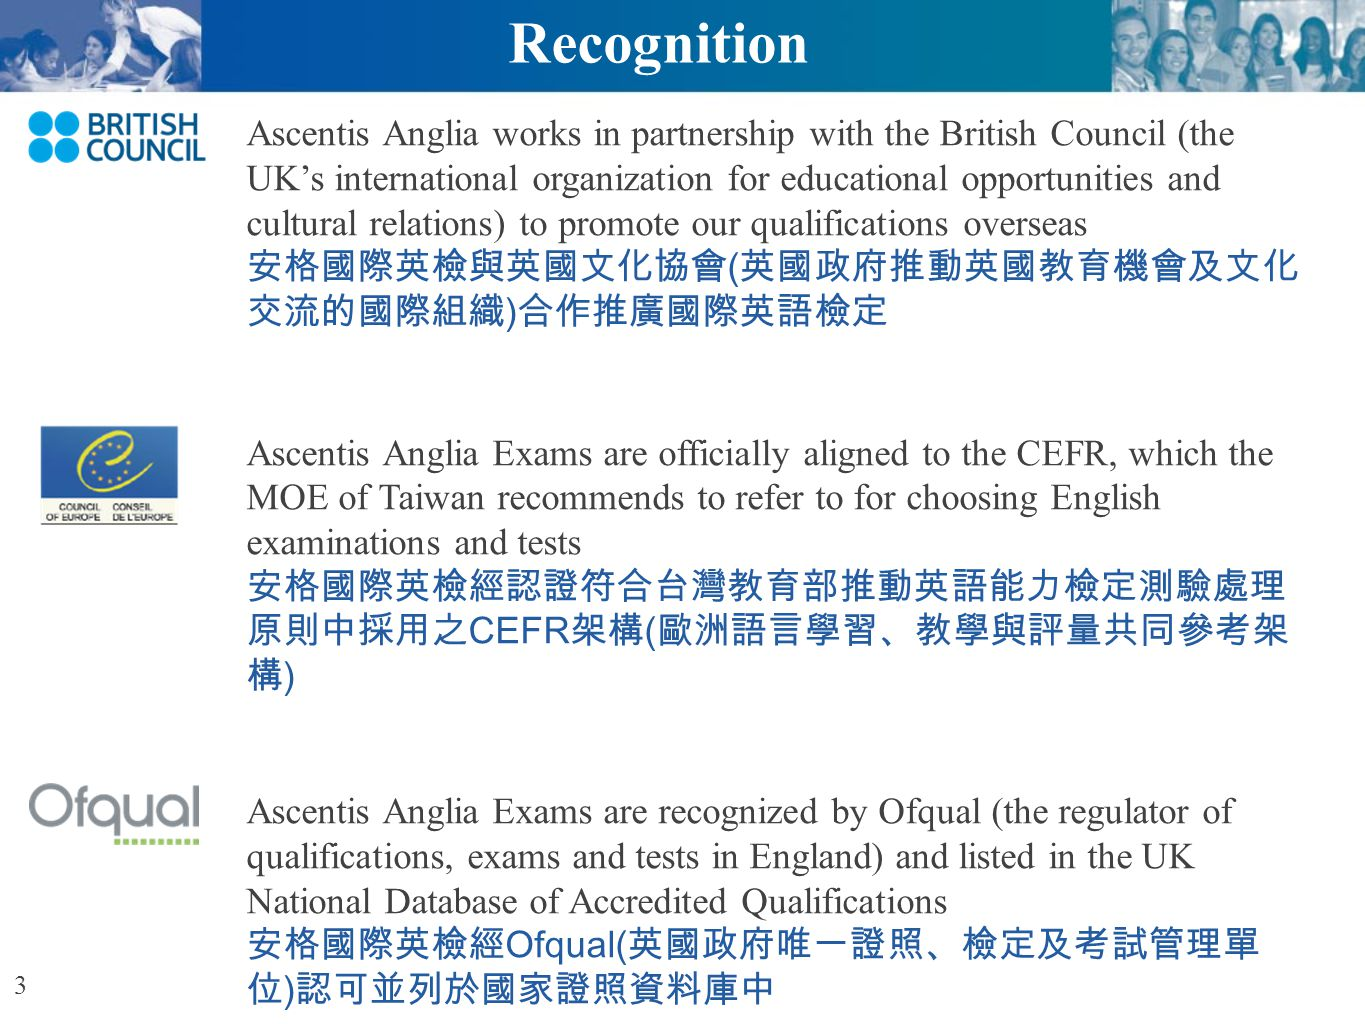 Ascentis Anglia ESOL International Examinations Specific objectives At this level the student can successfully: Manipulate structures to create emphasis, and vary style and idiom Listen and respond to passages and questions in a variety of forms, delivered at a measured speaking pace Anglia CEFR-B2 (Advanced) 14